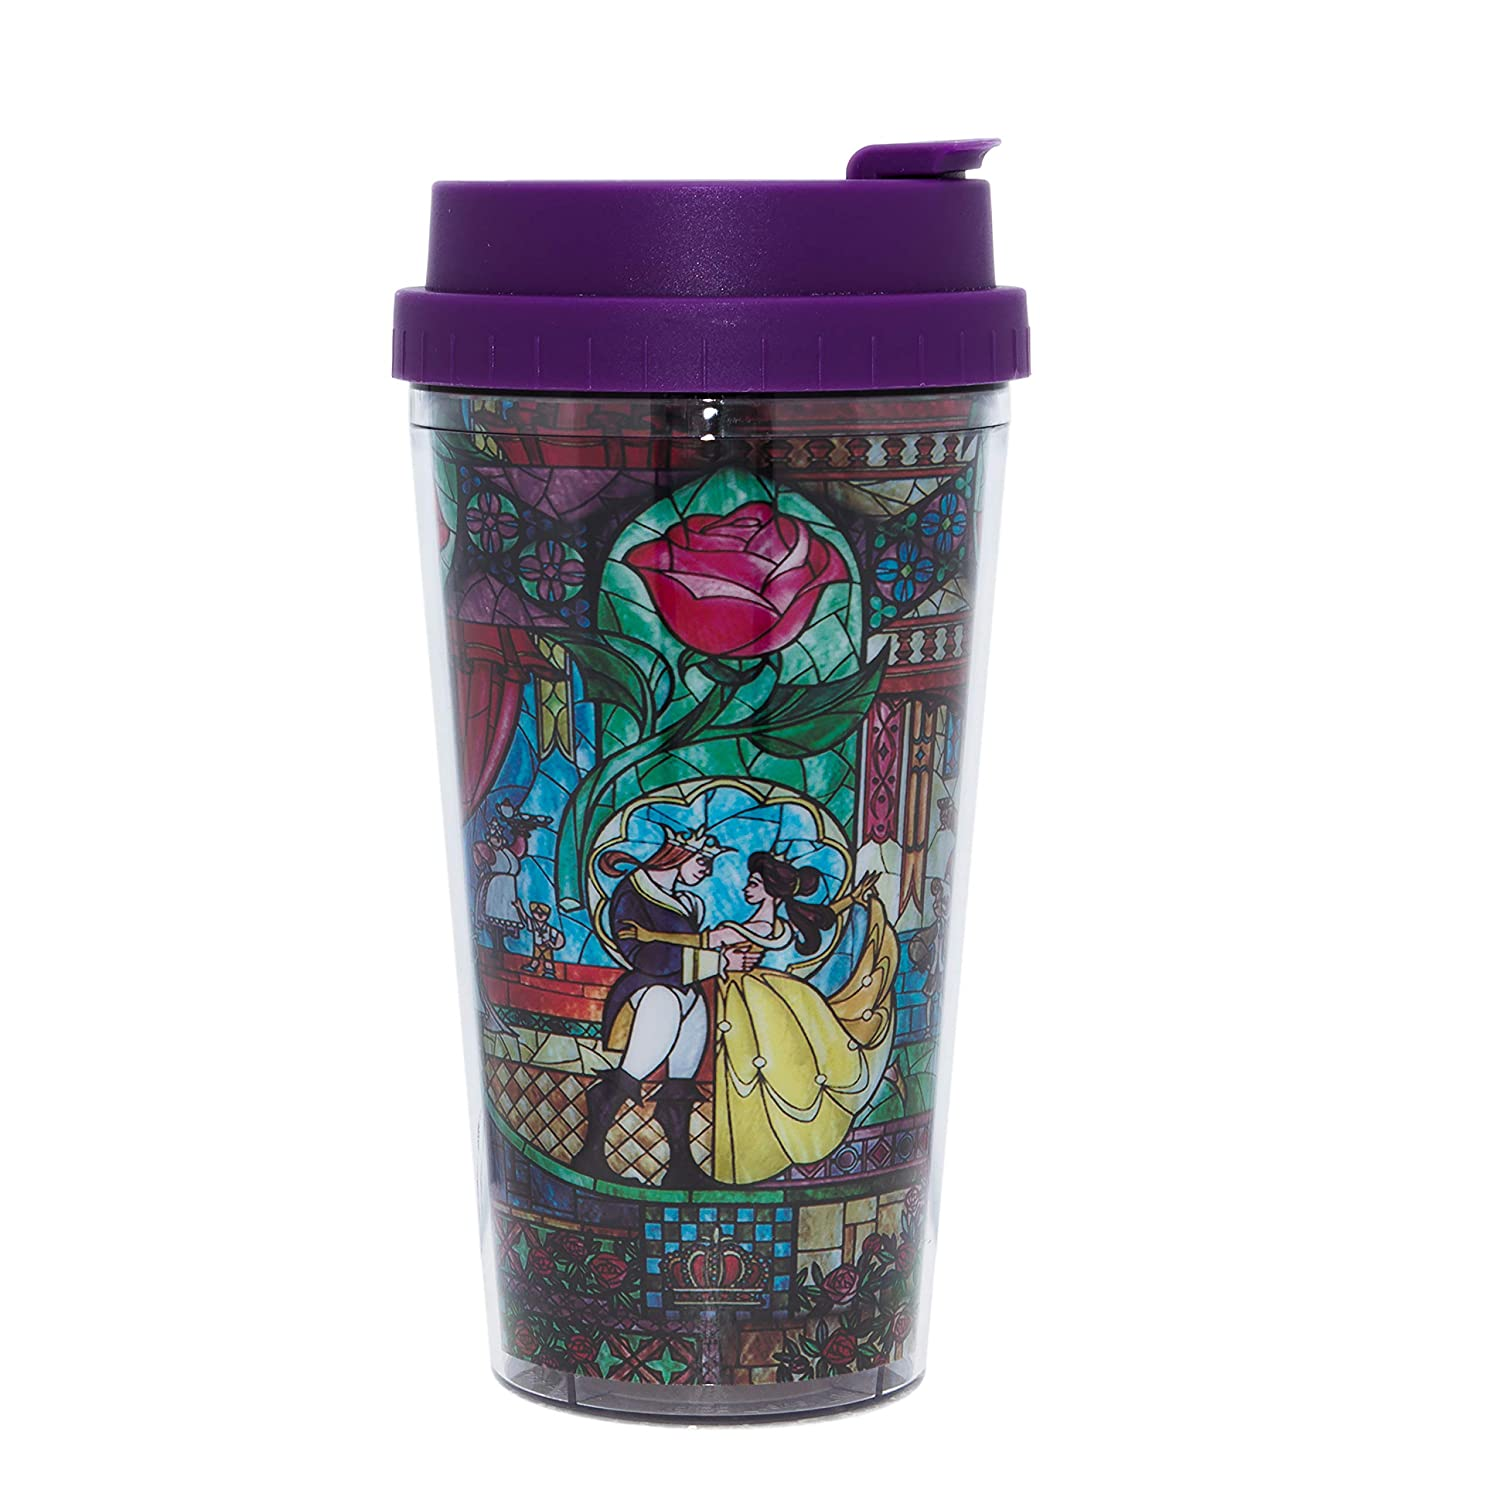 36c4777e33 Amazon.com: Disney Princesses DP1231B2 Beauty and The Beast Stained Glass  Double Wall Plastic Travel Mug, 16-Ounce Multicolor: Kitchen & Dining